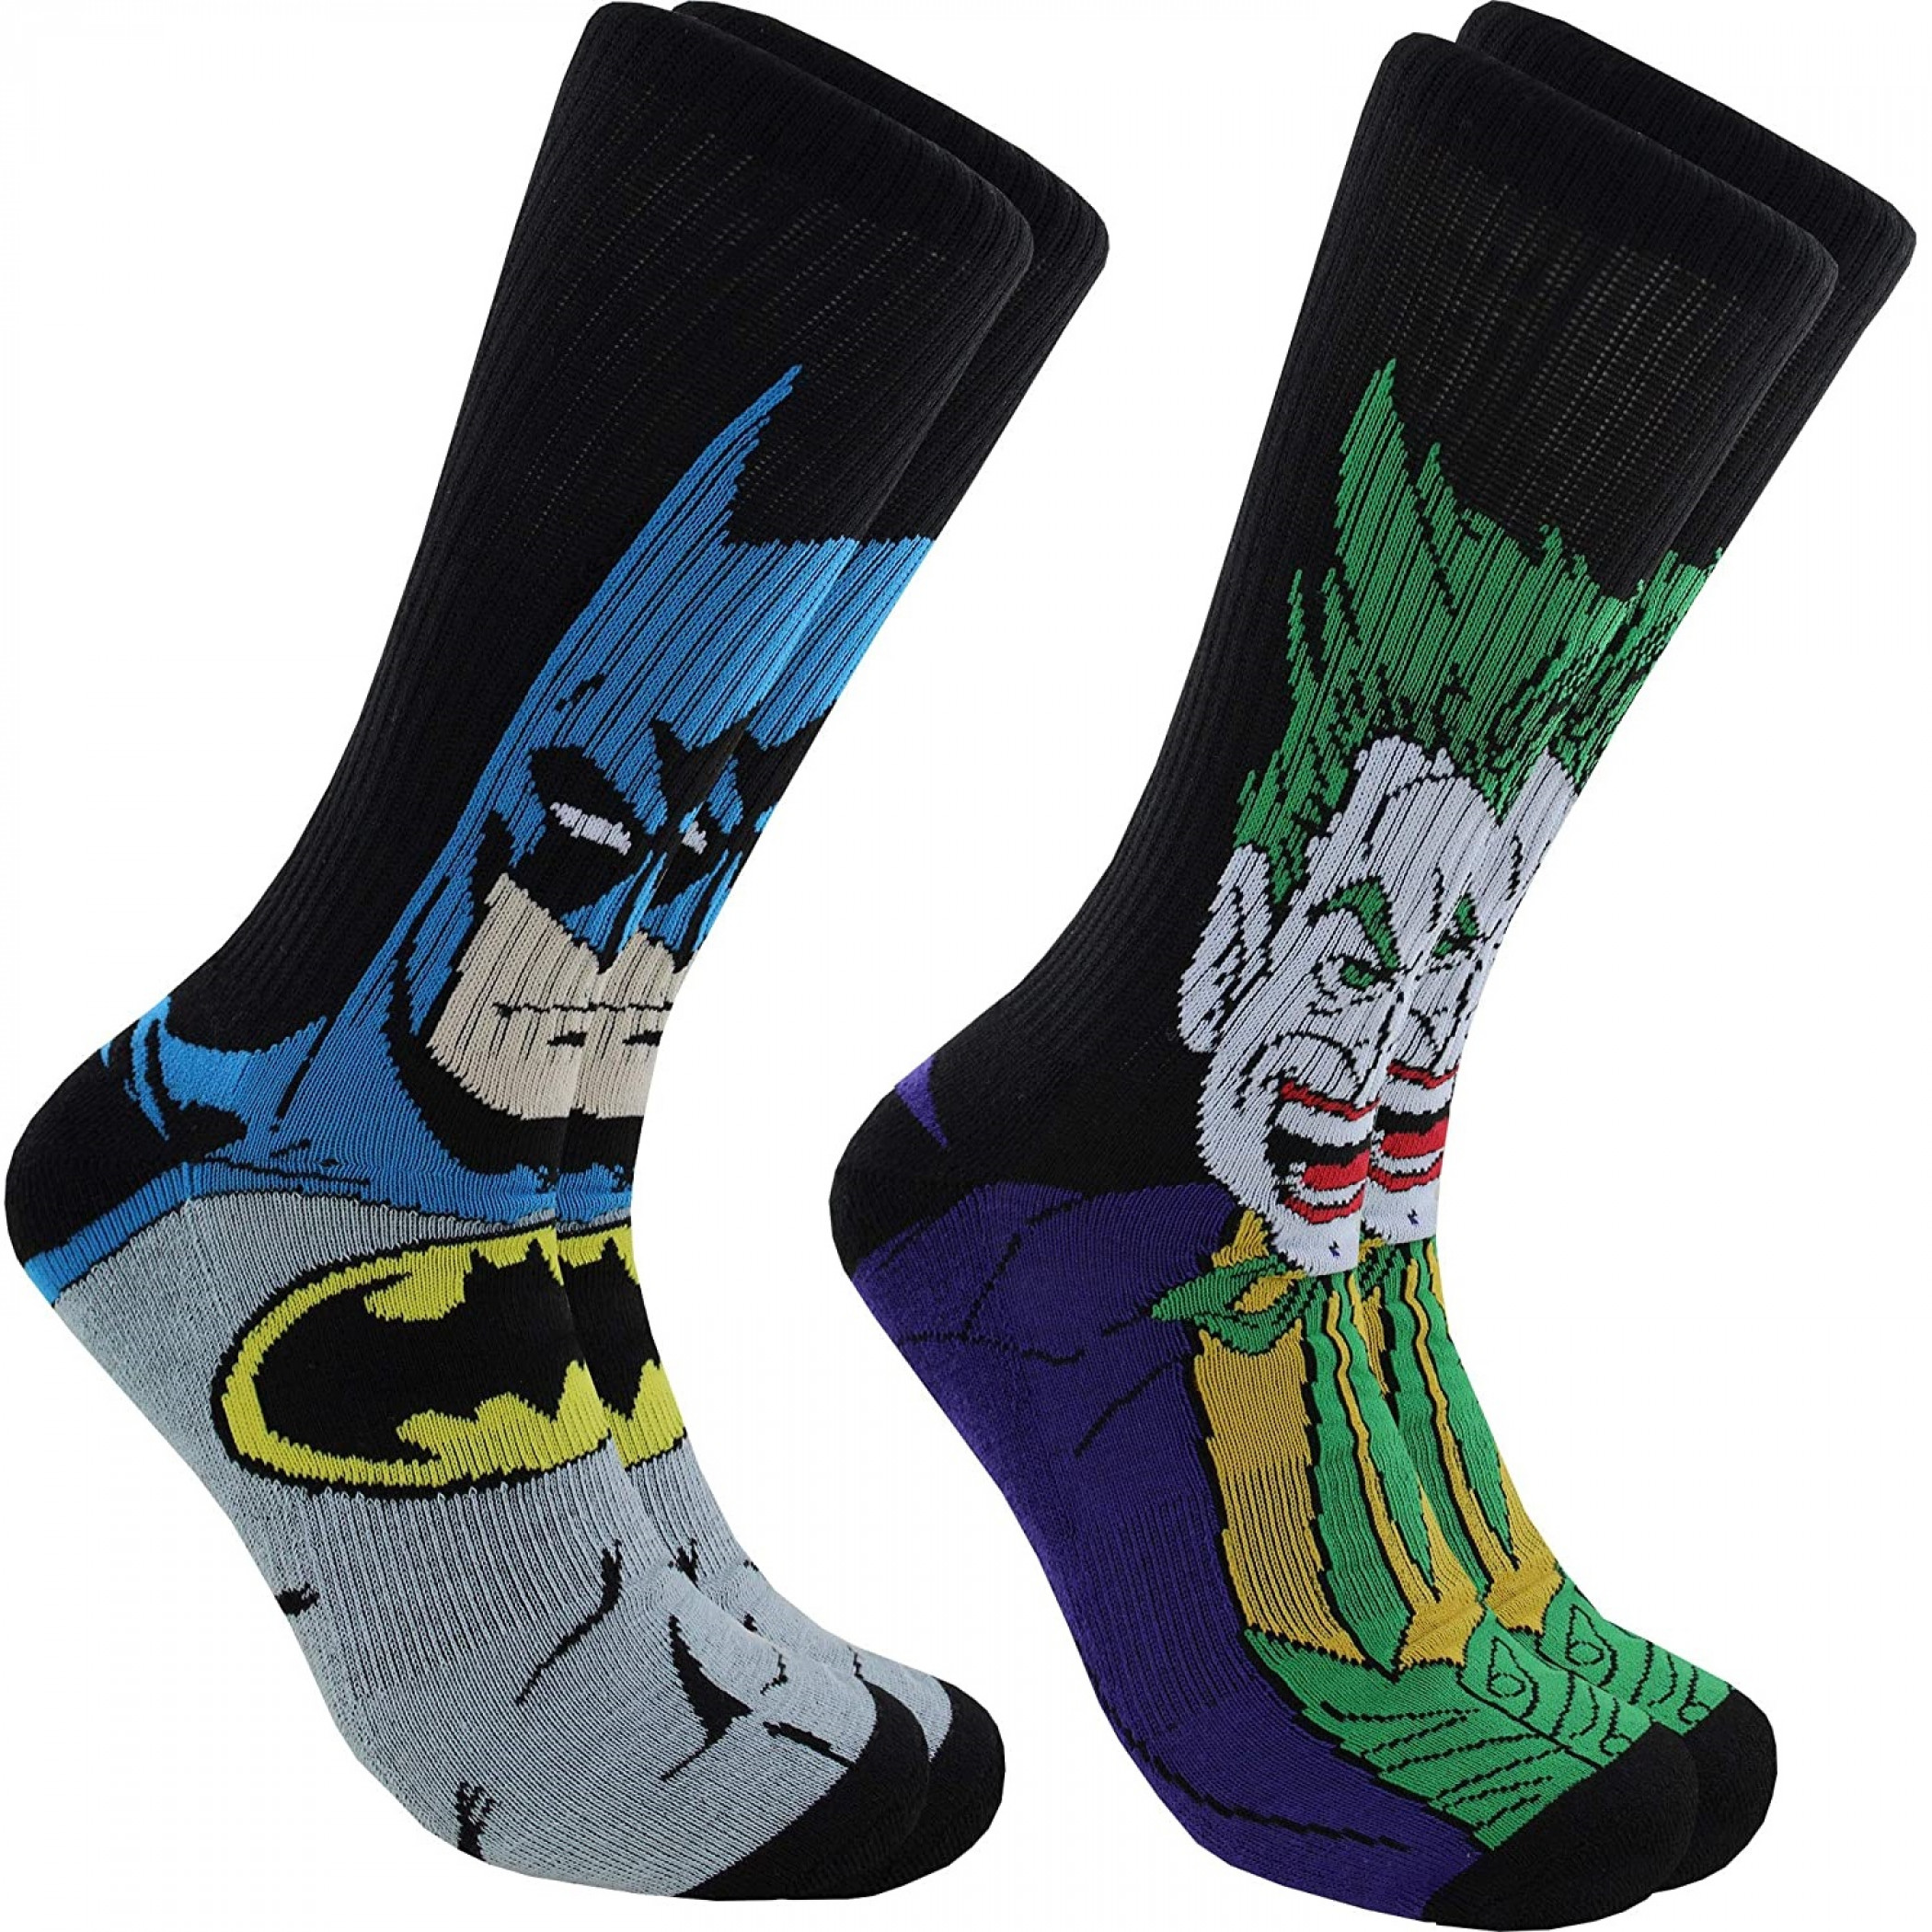 Batman And Joker Character Images 2-Pair Pack of Athletic Socks